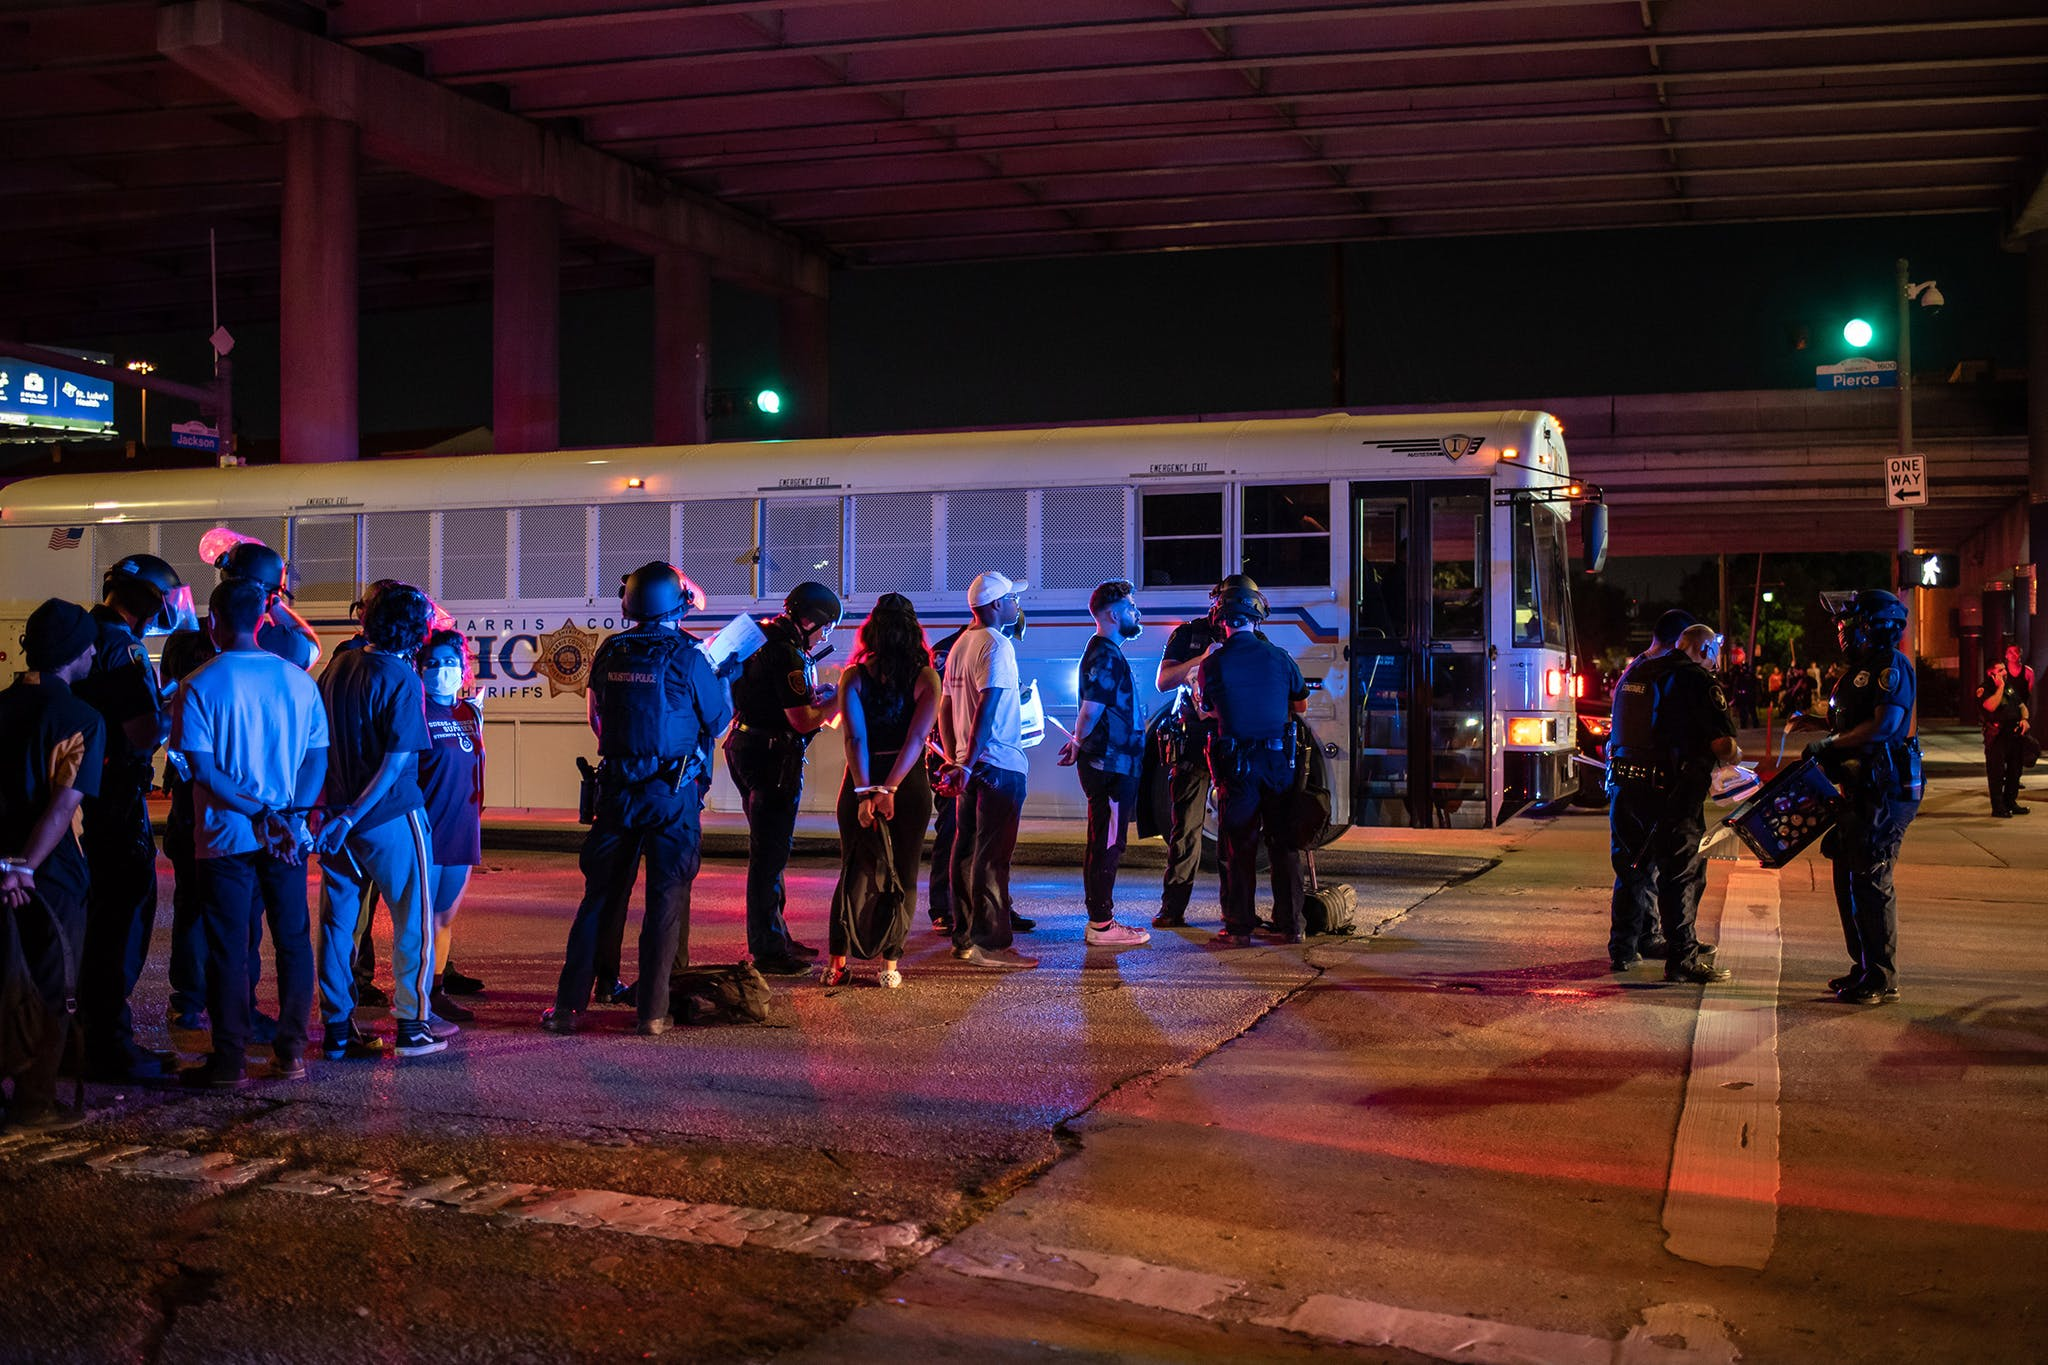 A group of people being placed under arrest stand by a Harris County Jail bus after protesters were apprehended in a fenced in area in Houston, on June 2, 2020.